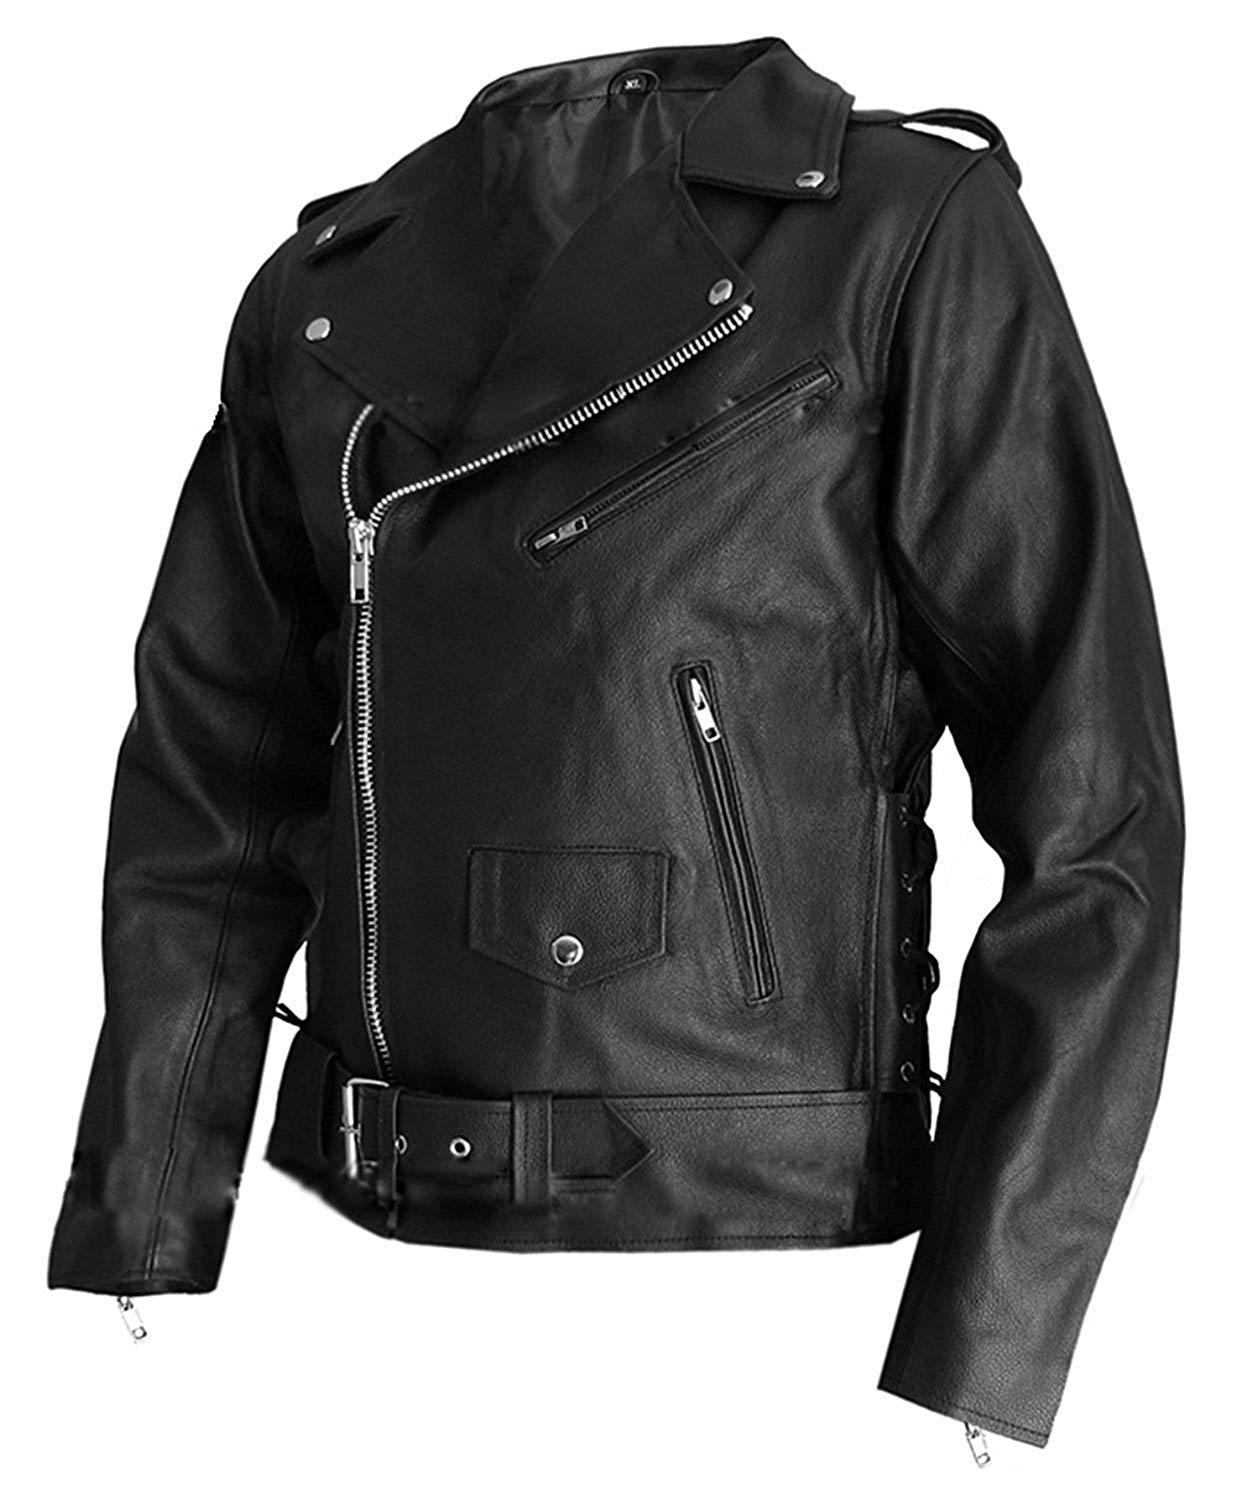 a5f26433114a8 Get Quotations · Men s Biker Style Black Real Leather Jacket